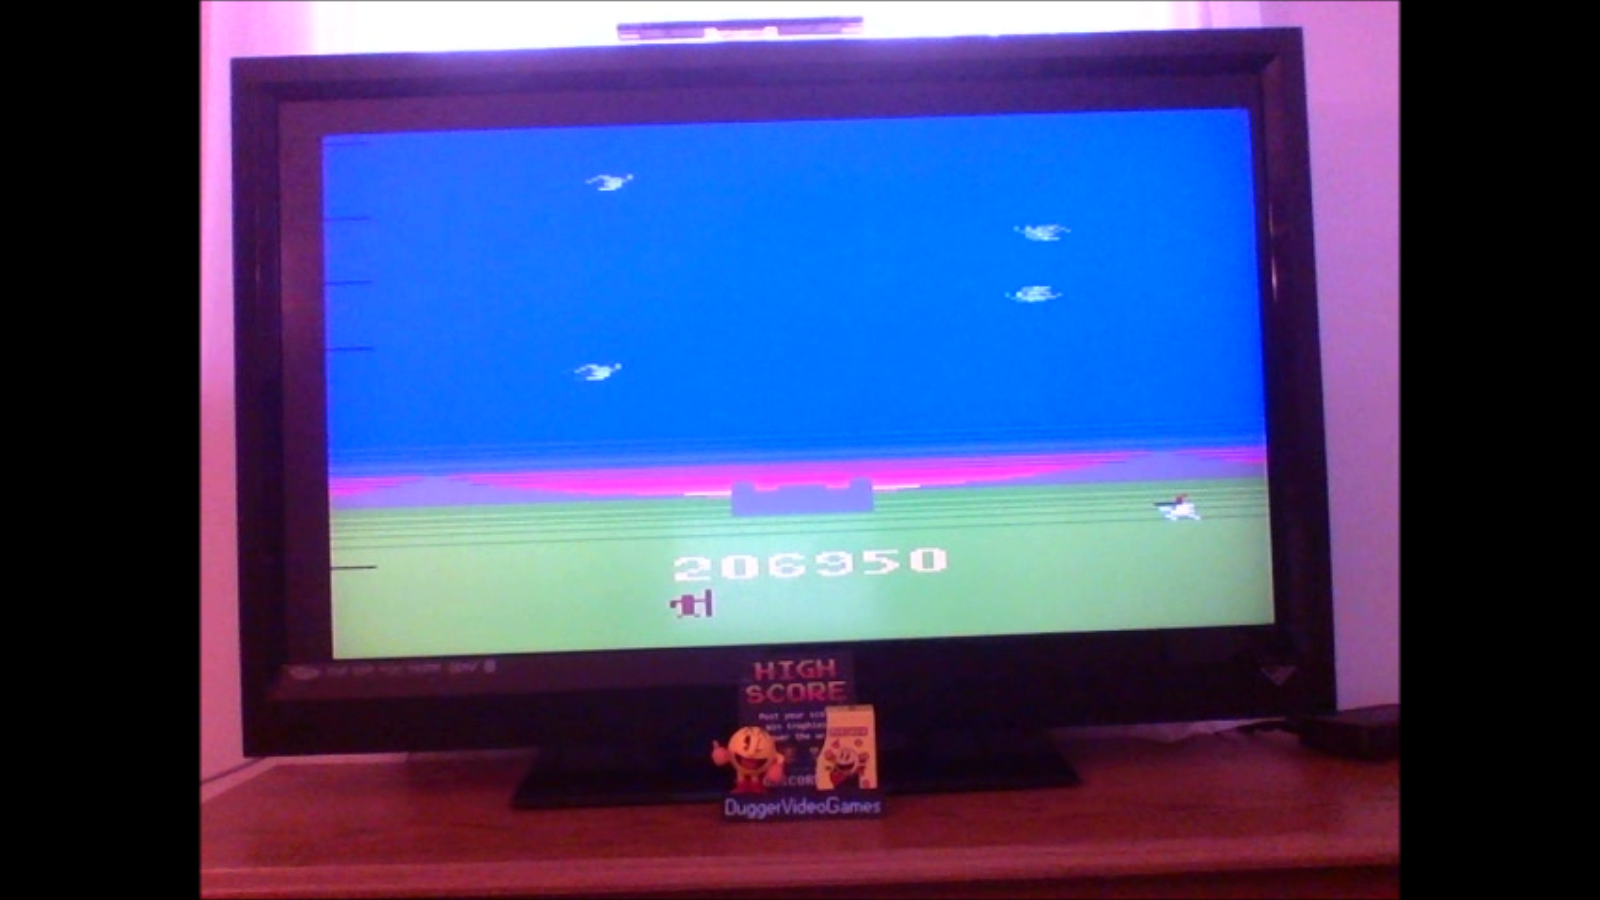 DuggerVideoGames: Sir Lancelot (Atari 2600 Emulated) 206,950 points on 2017-01-17 12:21:31